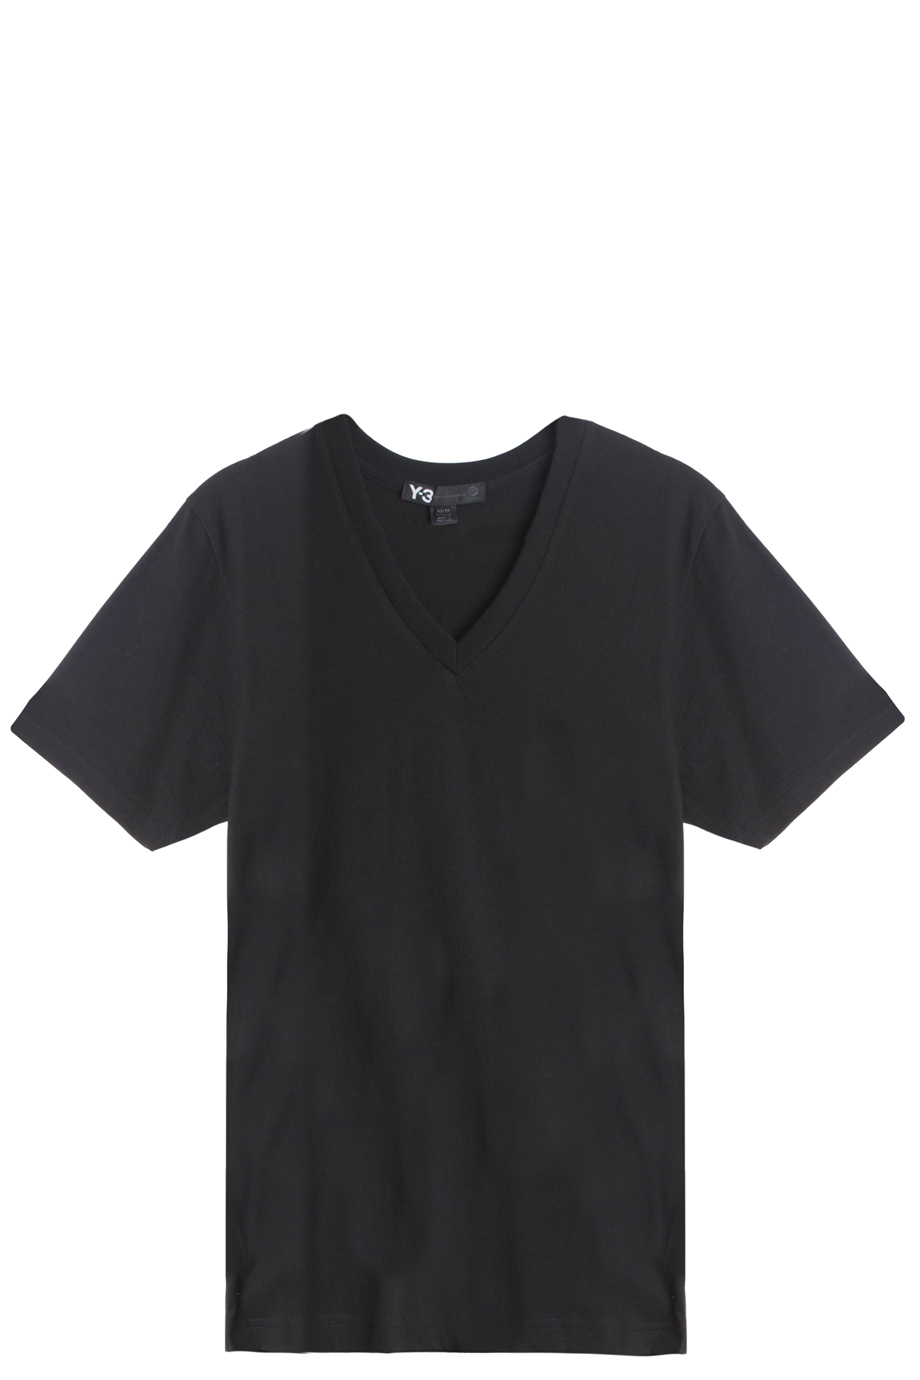 Lyst y 3 v neck t shirt in black V neck black t shirt